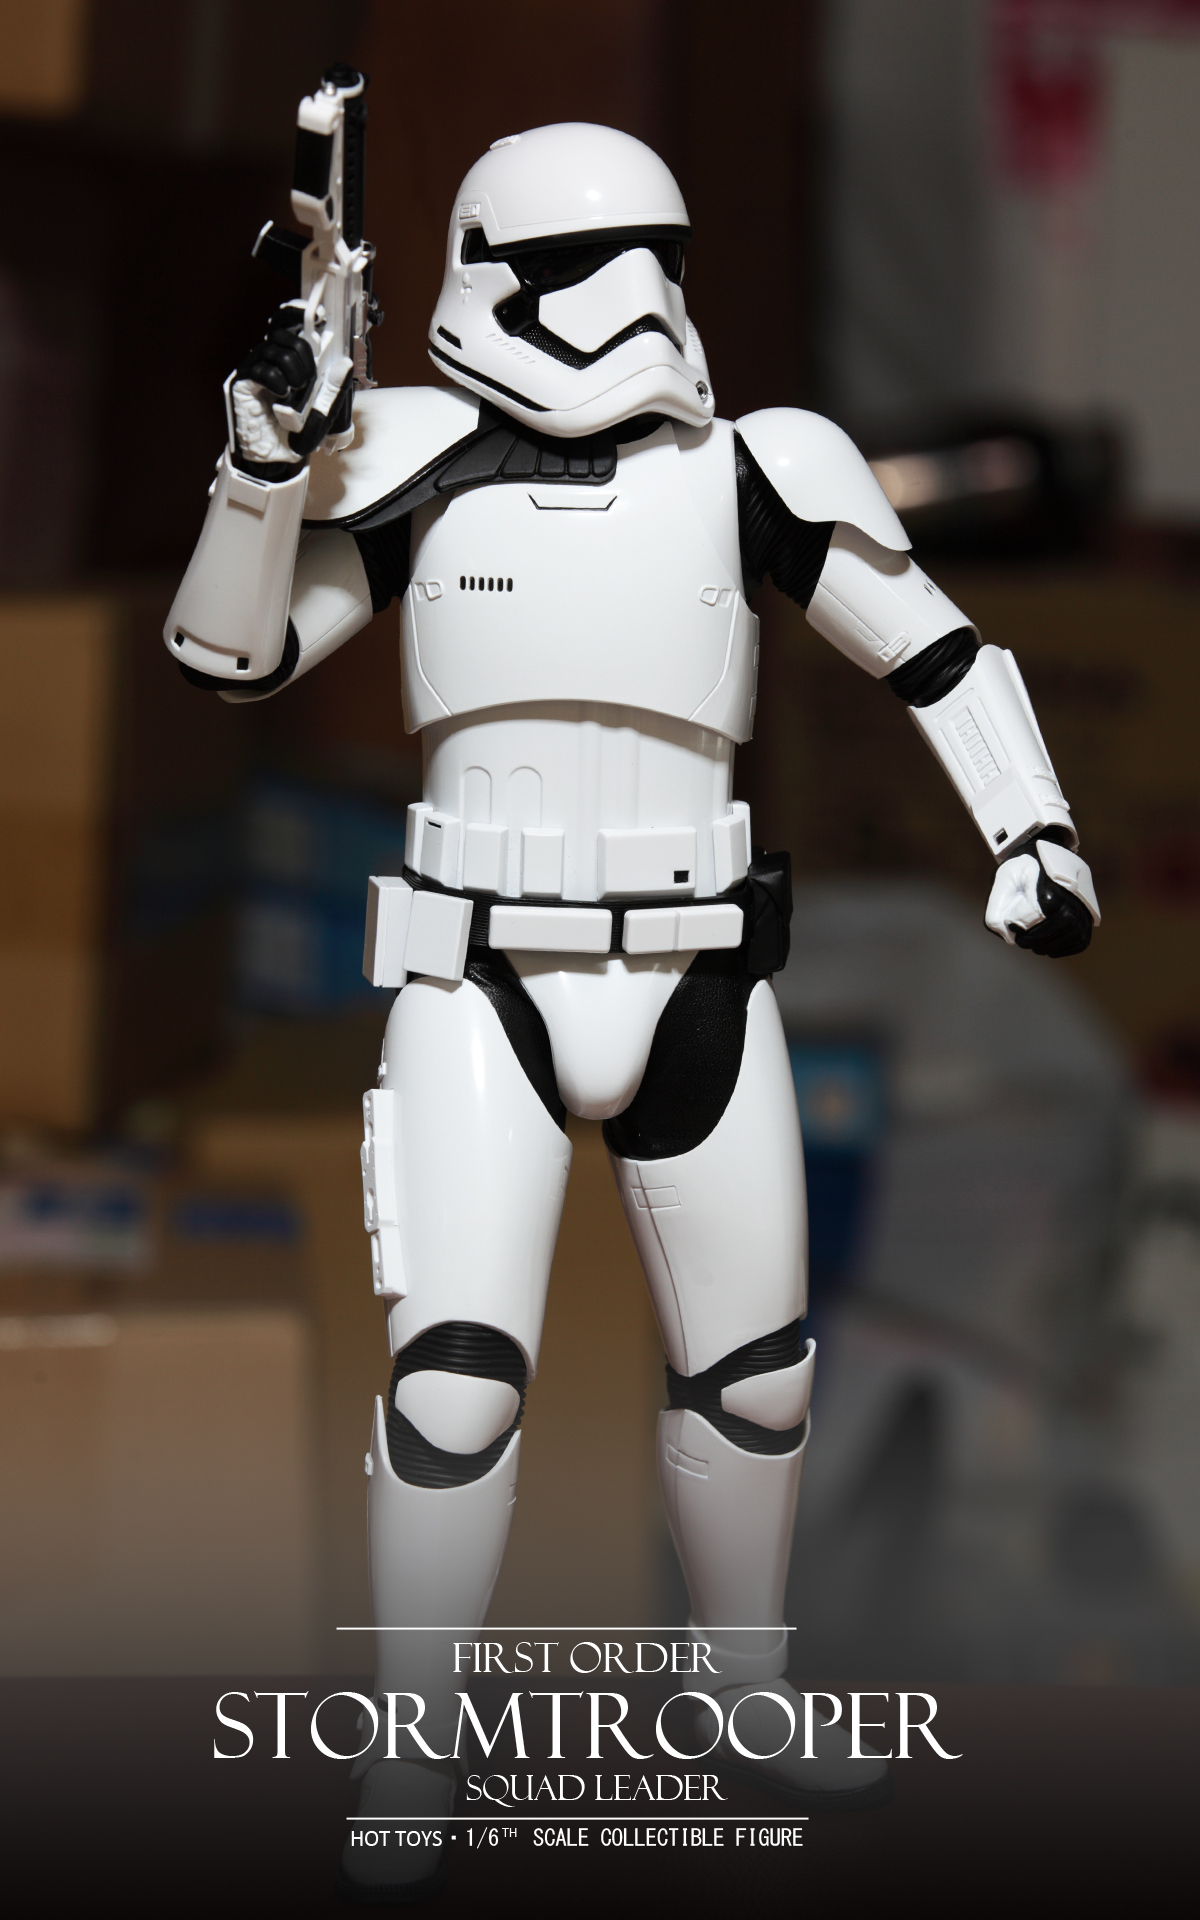 hottoys-star-wars-the-force-awakens-first-order-stormtrooper-Squad-Leader-picture01hottoys-star-wars-the-force-awakens-first-order-stormtrooper-Squad-Leader-picture04